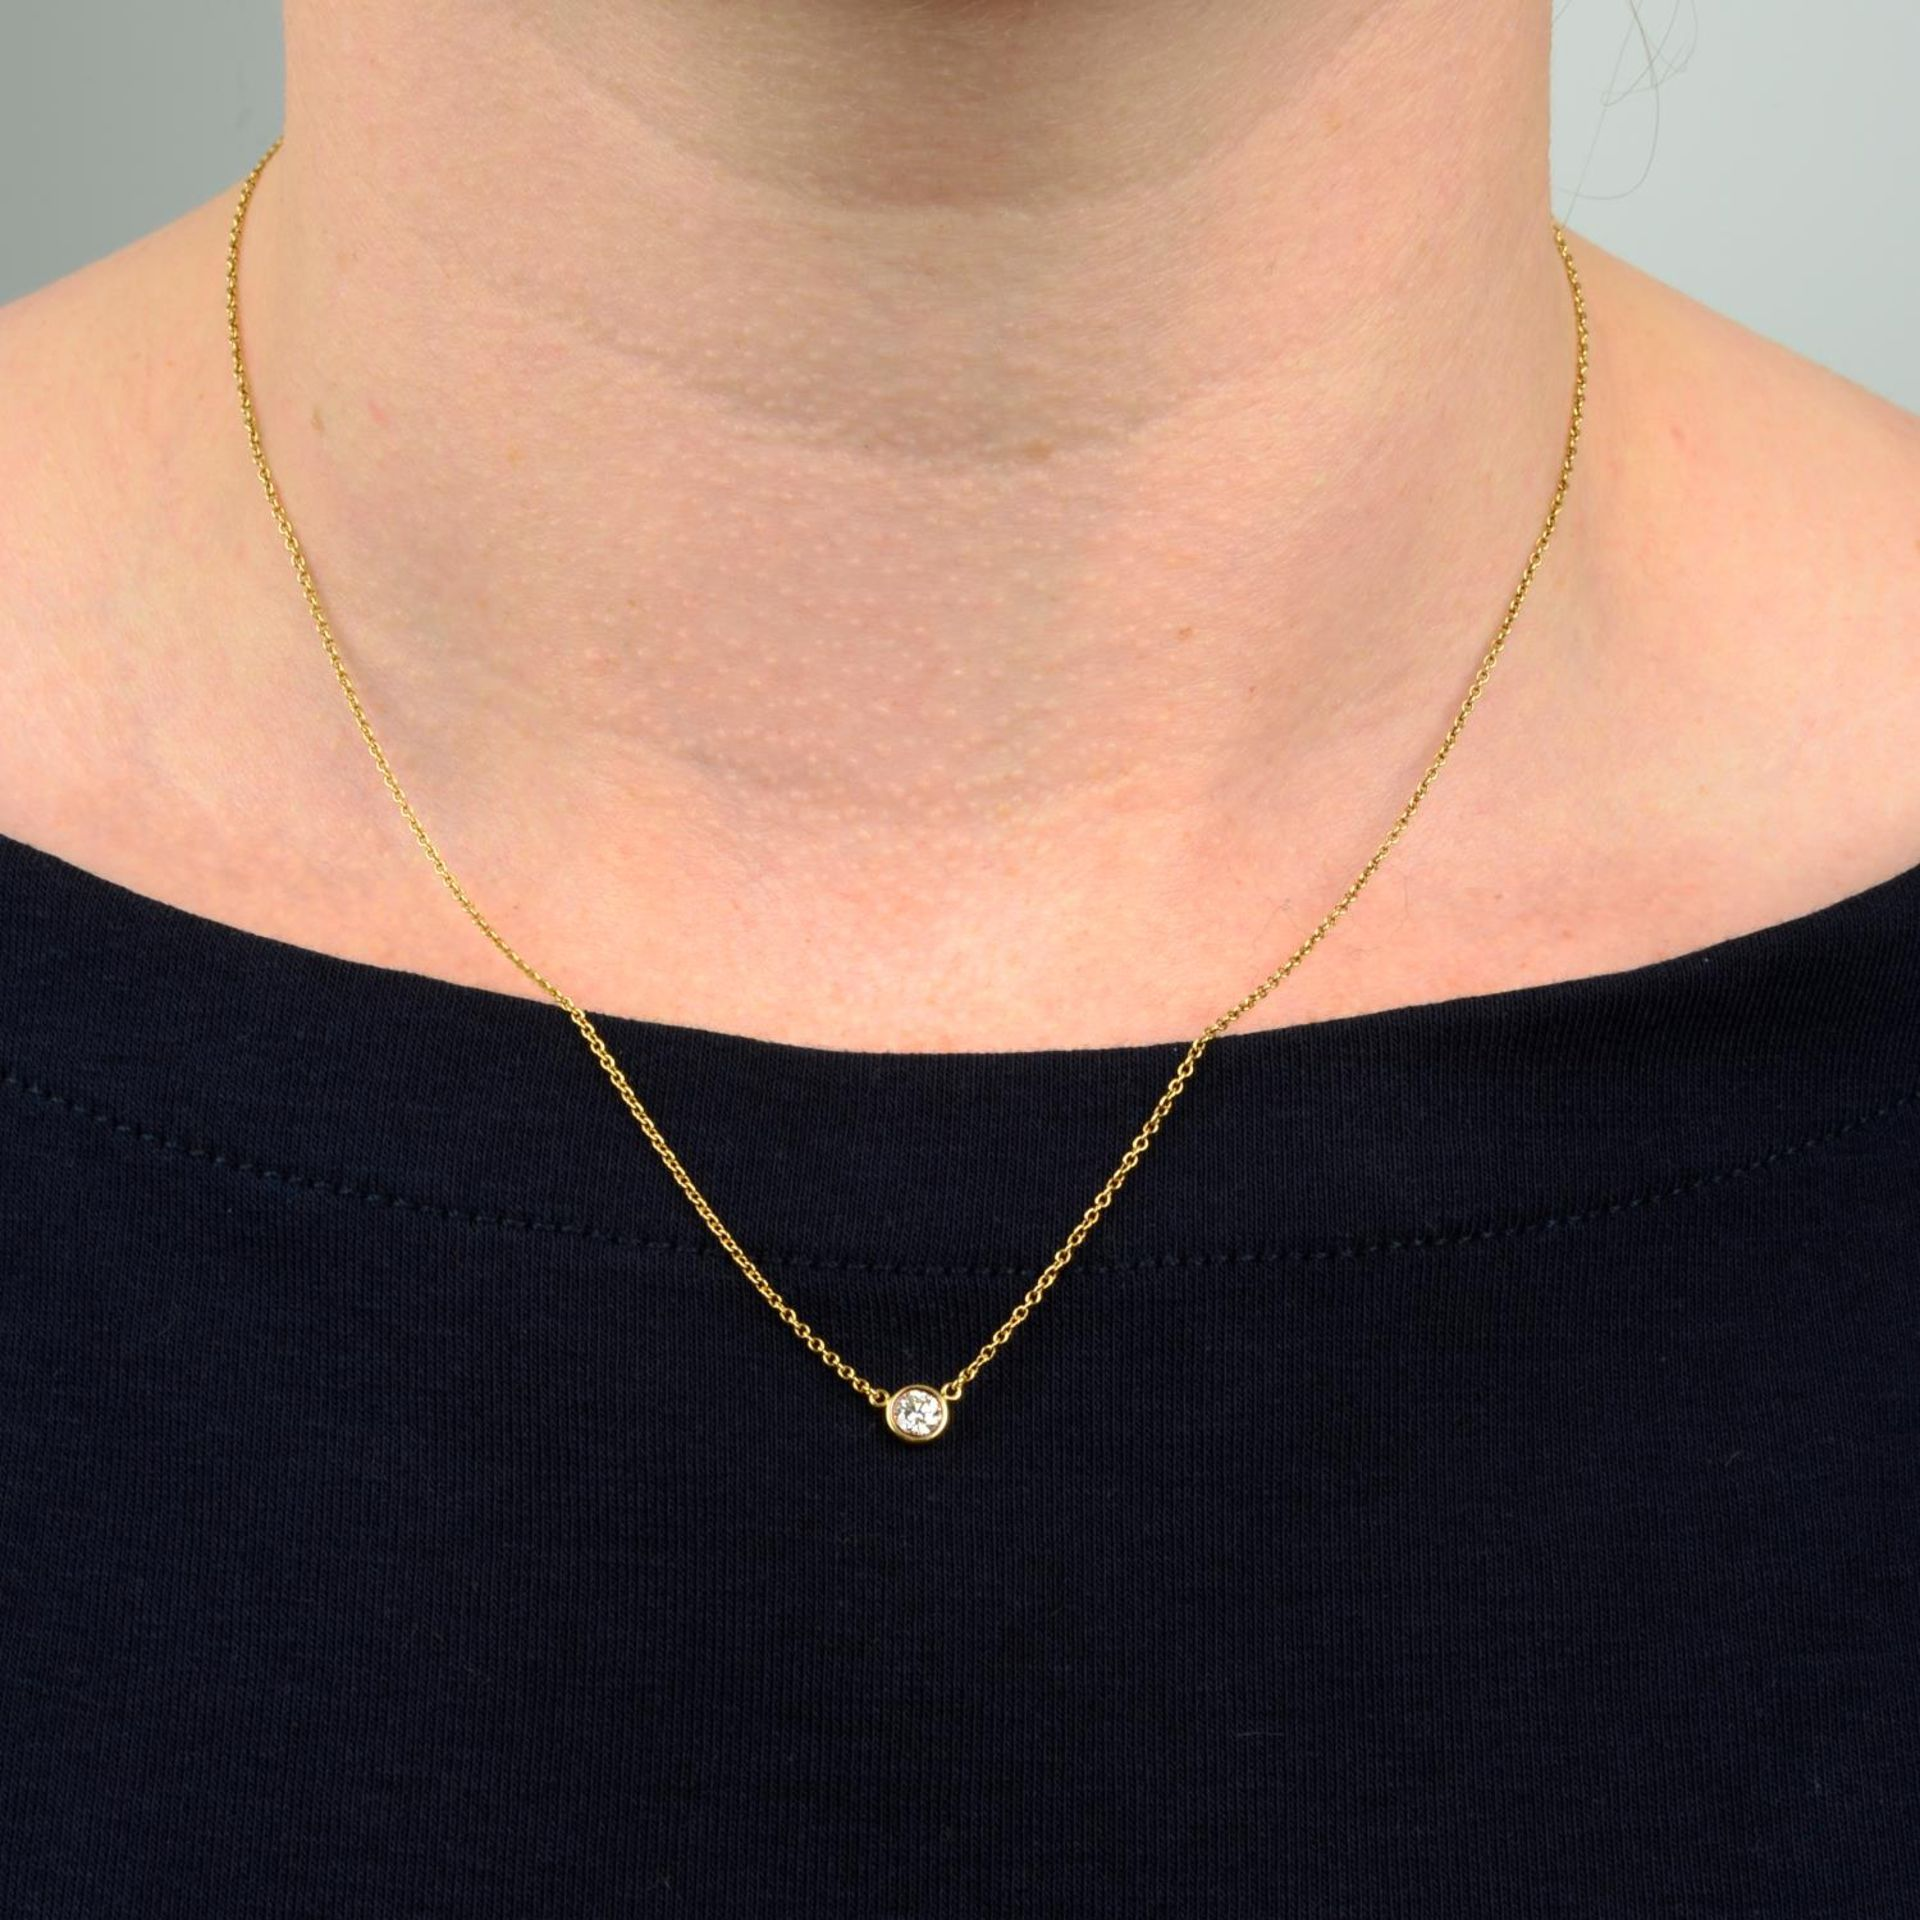 A 'Diamonds by the Yard' necklace, - Image 3 of 6